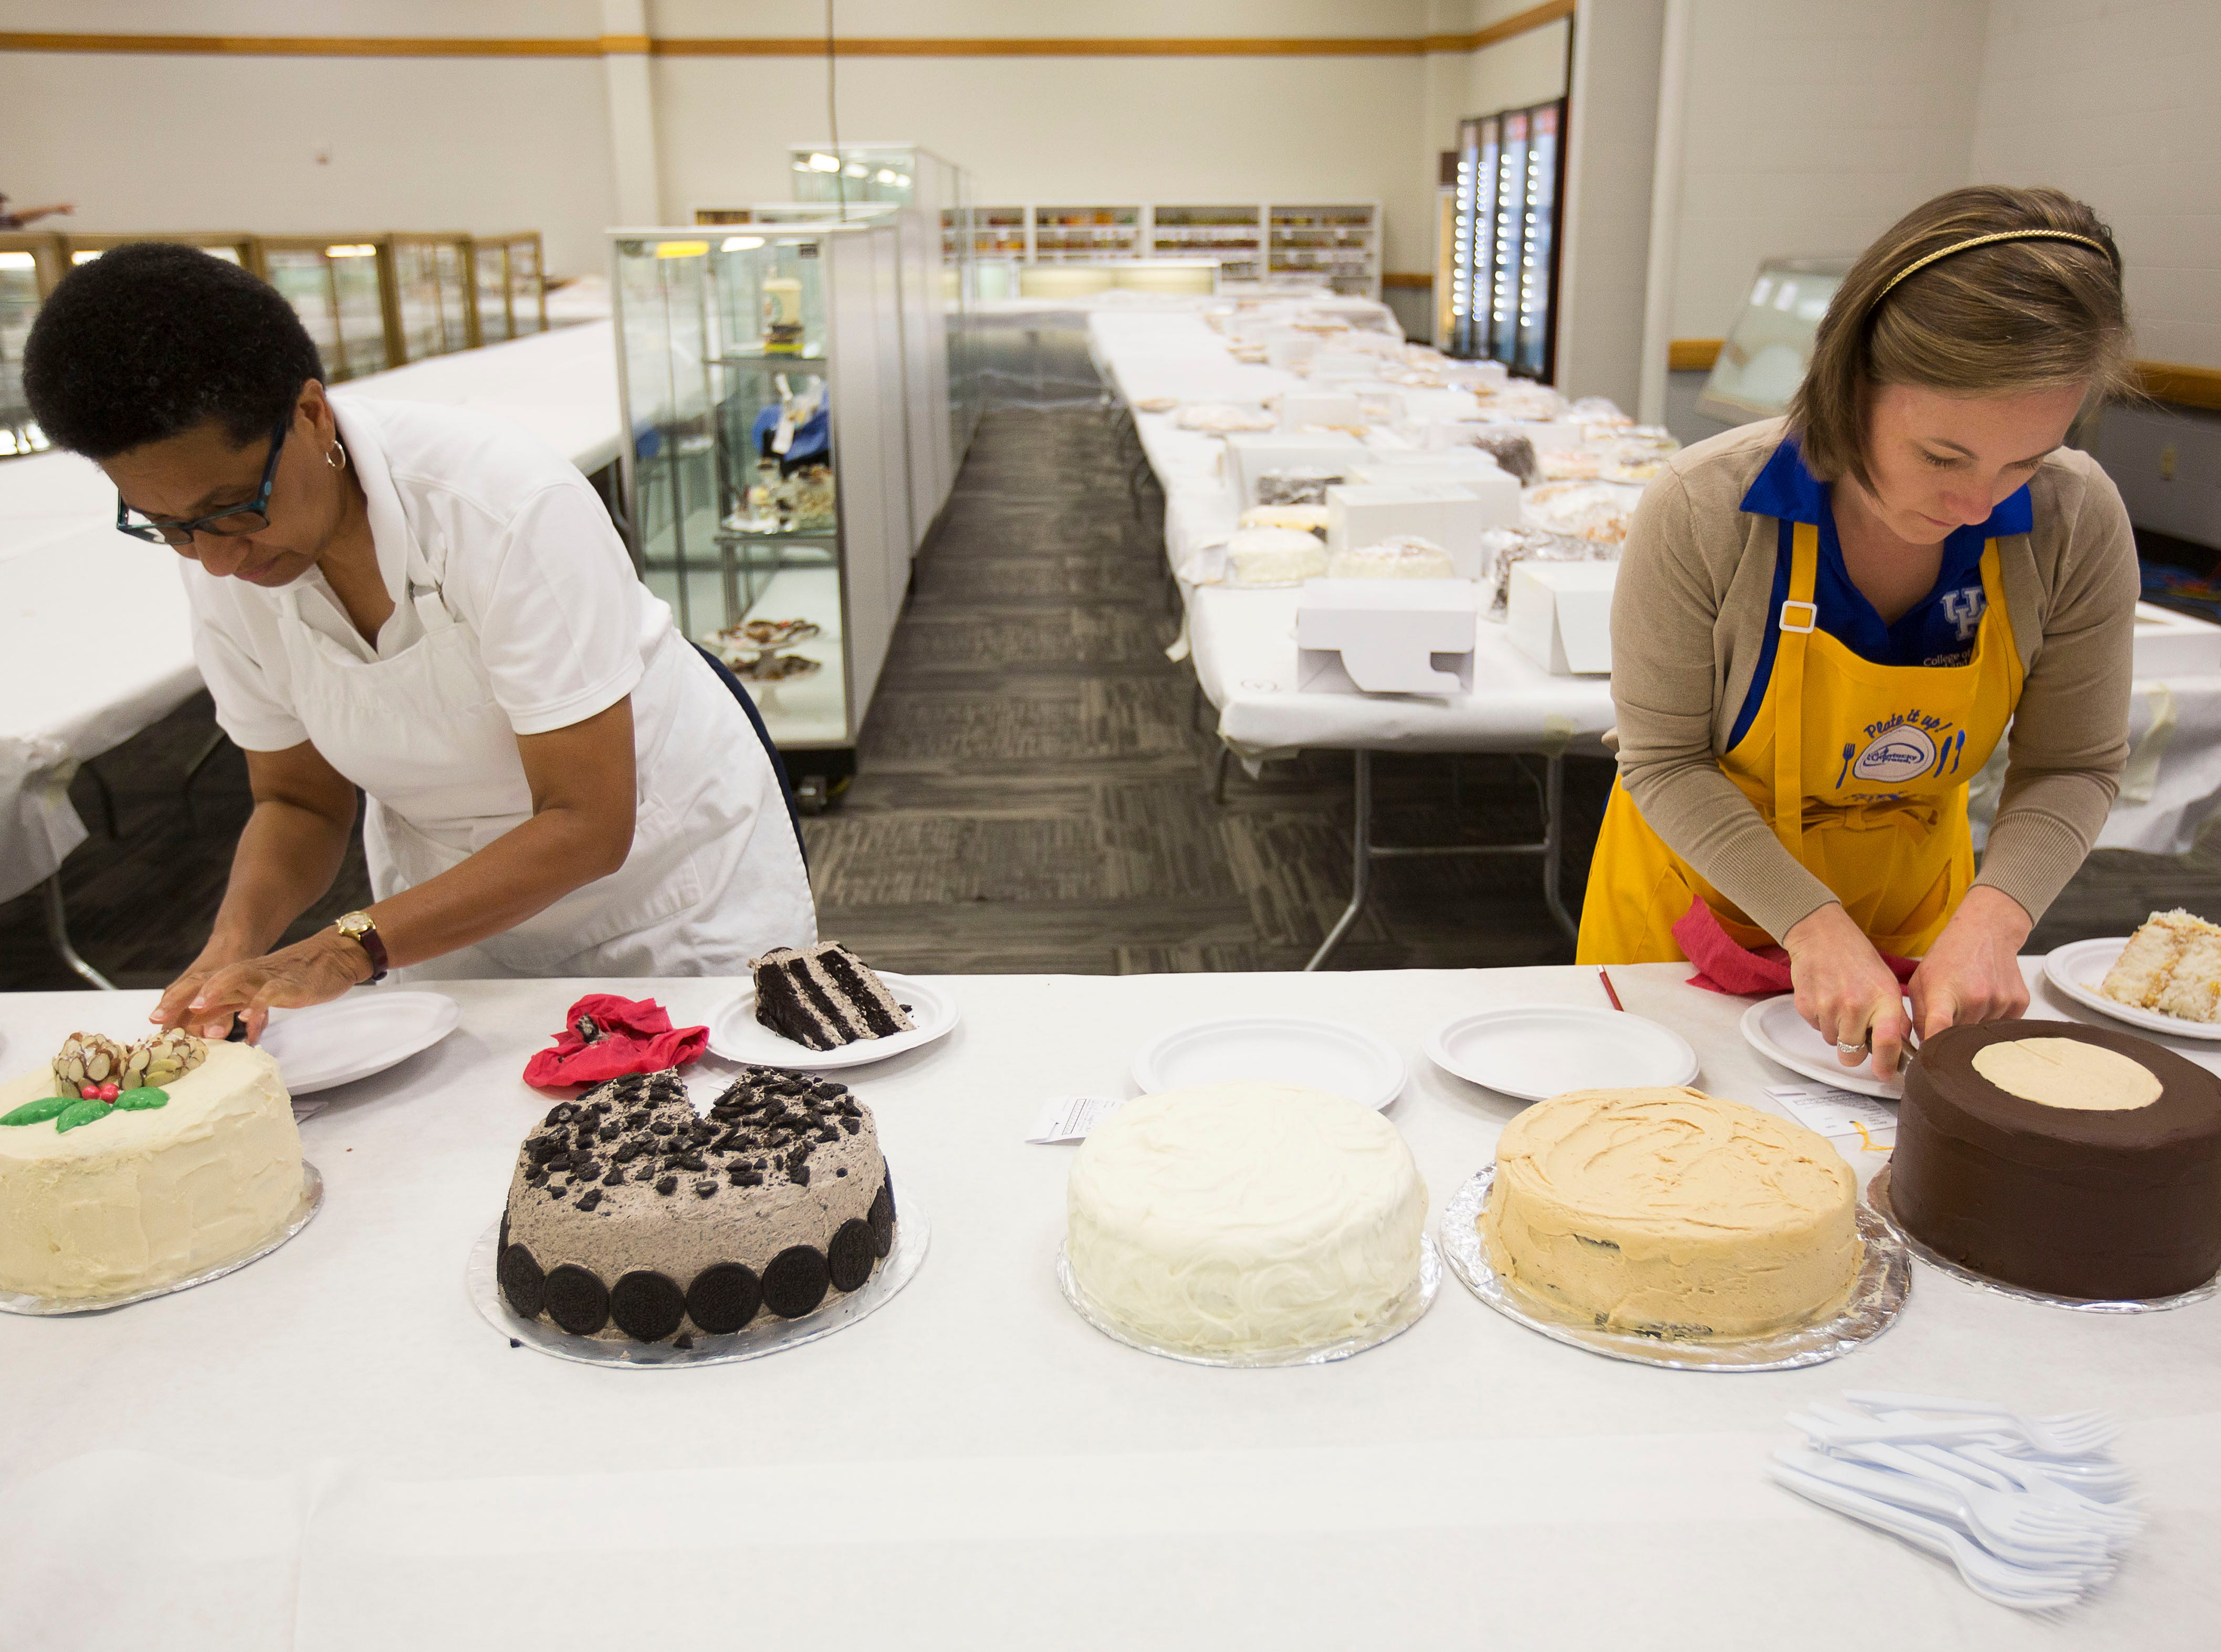 """Valerie Holland, left, and Elizabeth Coots, right, slice cakes to be judged during the """"Favorite Cake"""" taste testing at the Kentucky State Fair on Tuesday, August 14, 2018."""